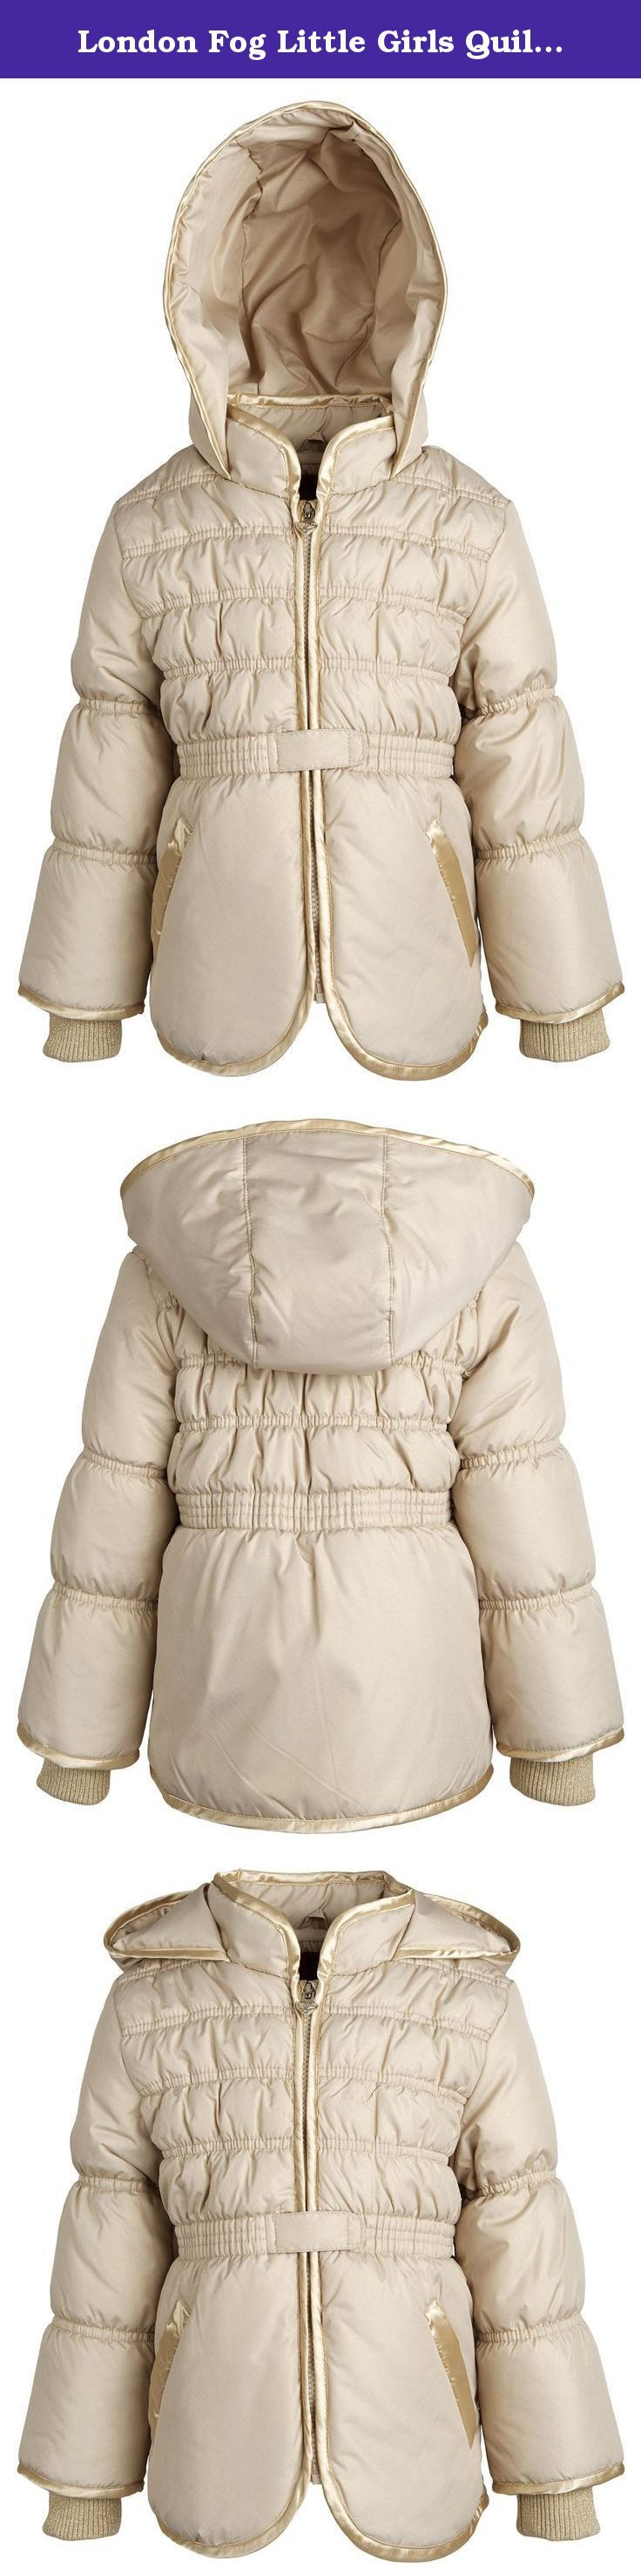 London Fog Little Girls Quilted Padded Fleece Lined Hooded Dressy Spring Jacket - Gold (Size 5/6). A feminine classic. This puffer coat by London Fog is smocked at the waist, sports detailed quilting at the top, and is ornamented by a heart shaped zipper charm. Its outer shell material sparkles subtly, as well as the ribbed knit cuffs. Thick fleece lines the back, thus providing additional warmth. Available in sizes 2 to 6X.